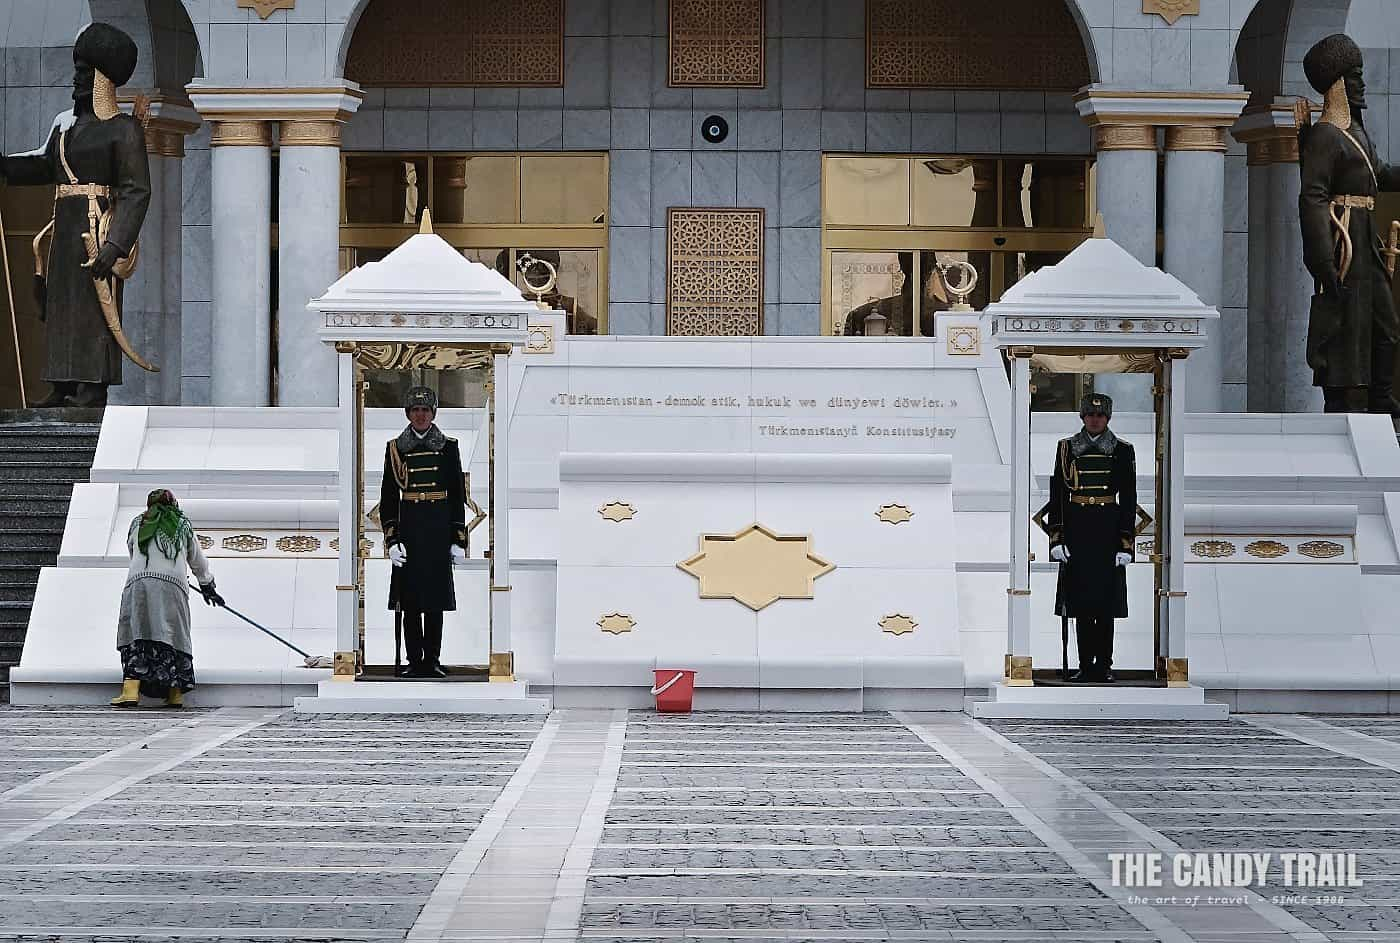 Guards at Independence monument in their sentry boxes and women cleans the marble around them ashgabat turkmenistan